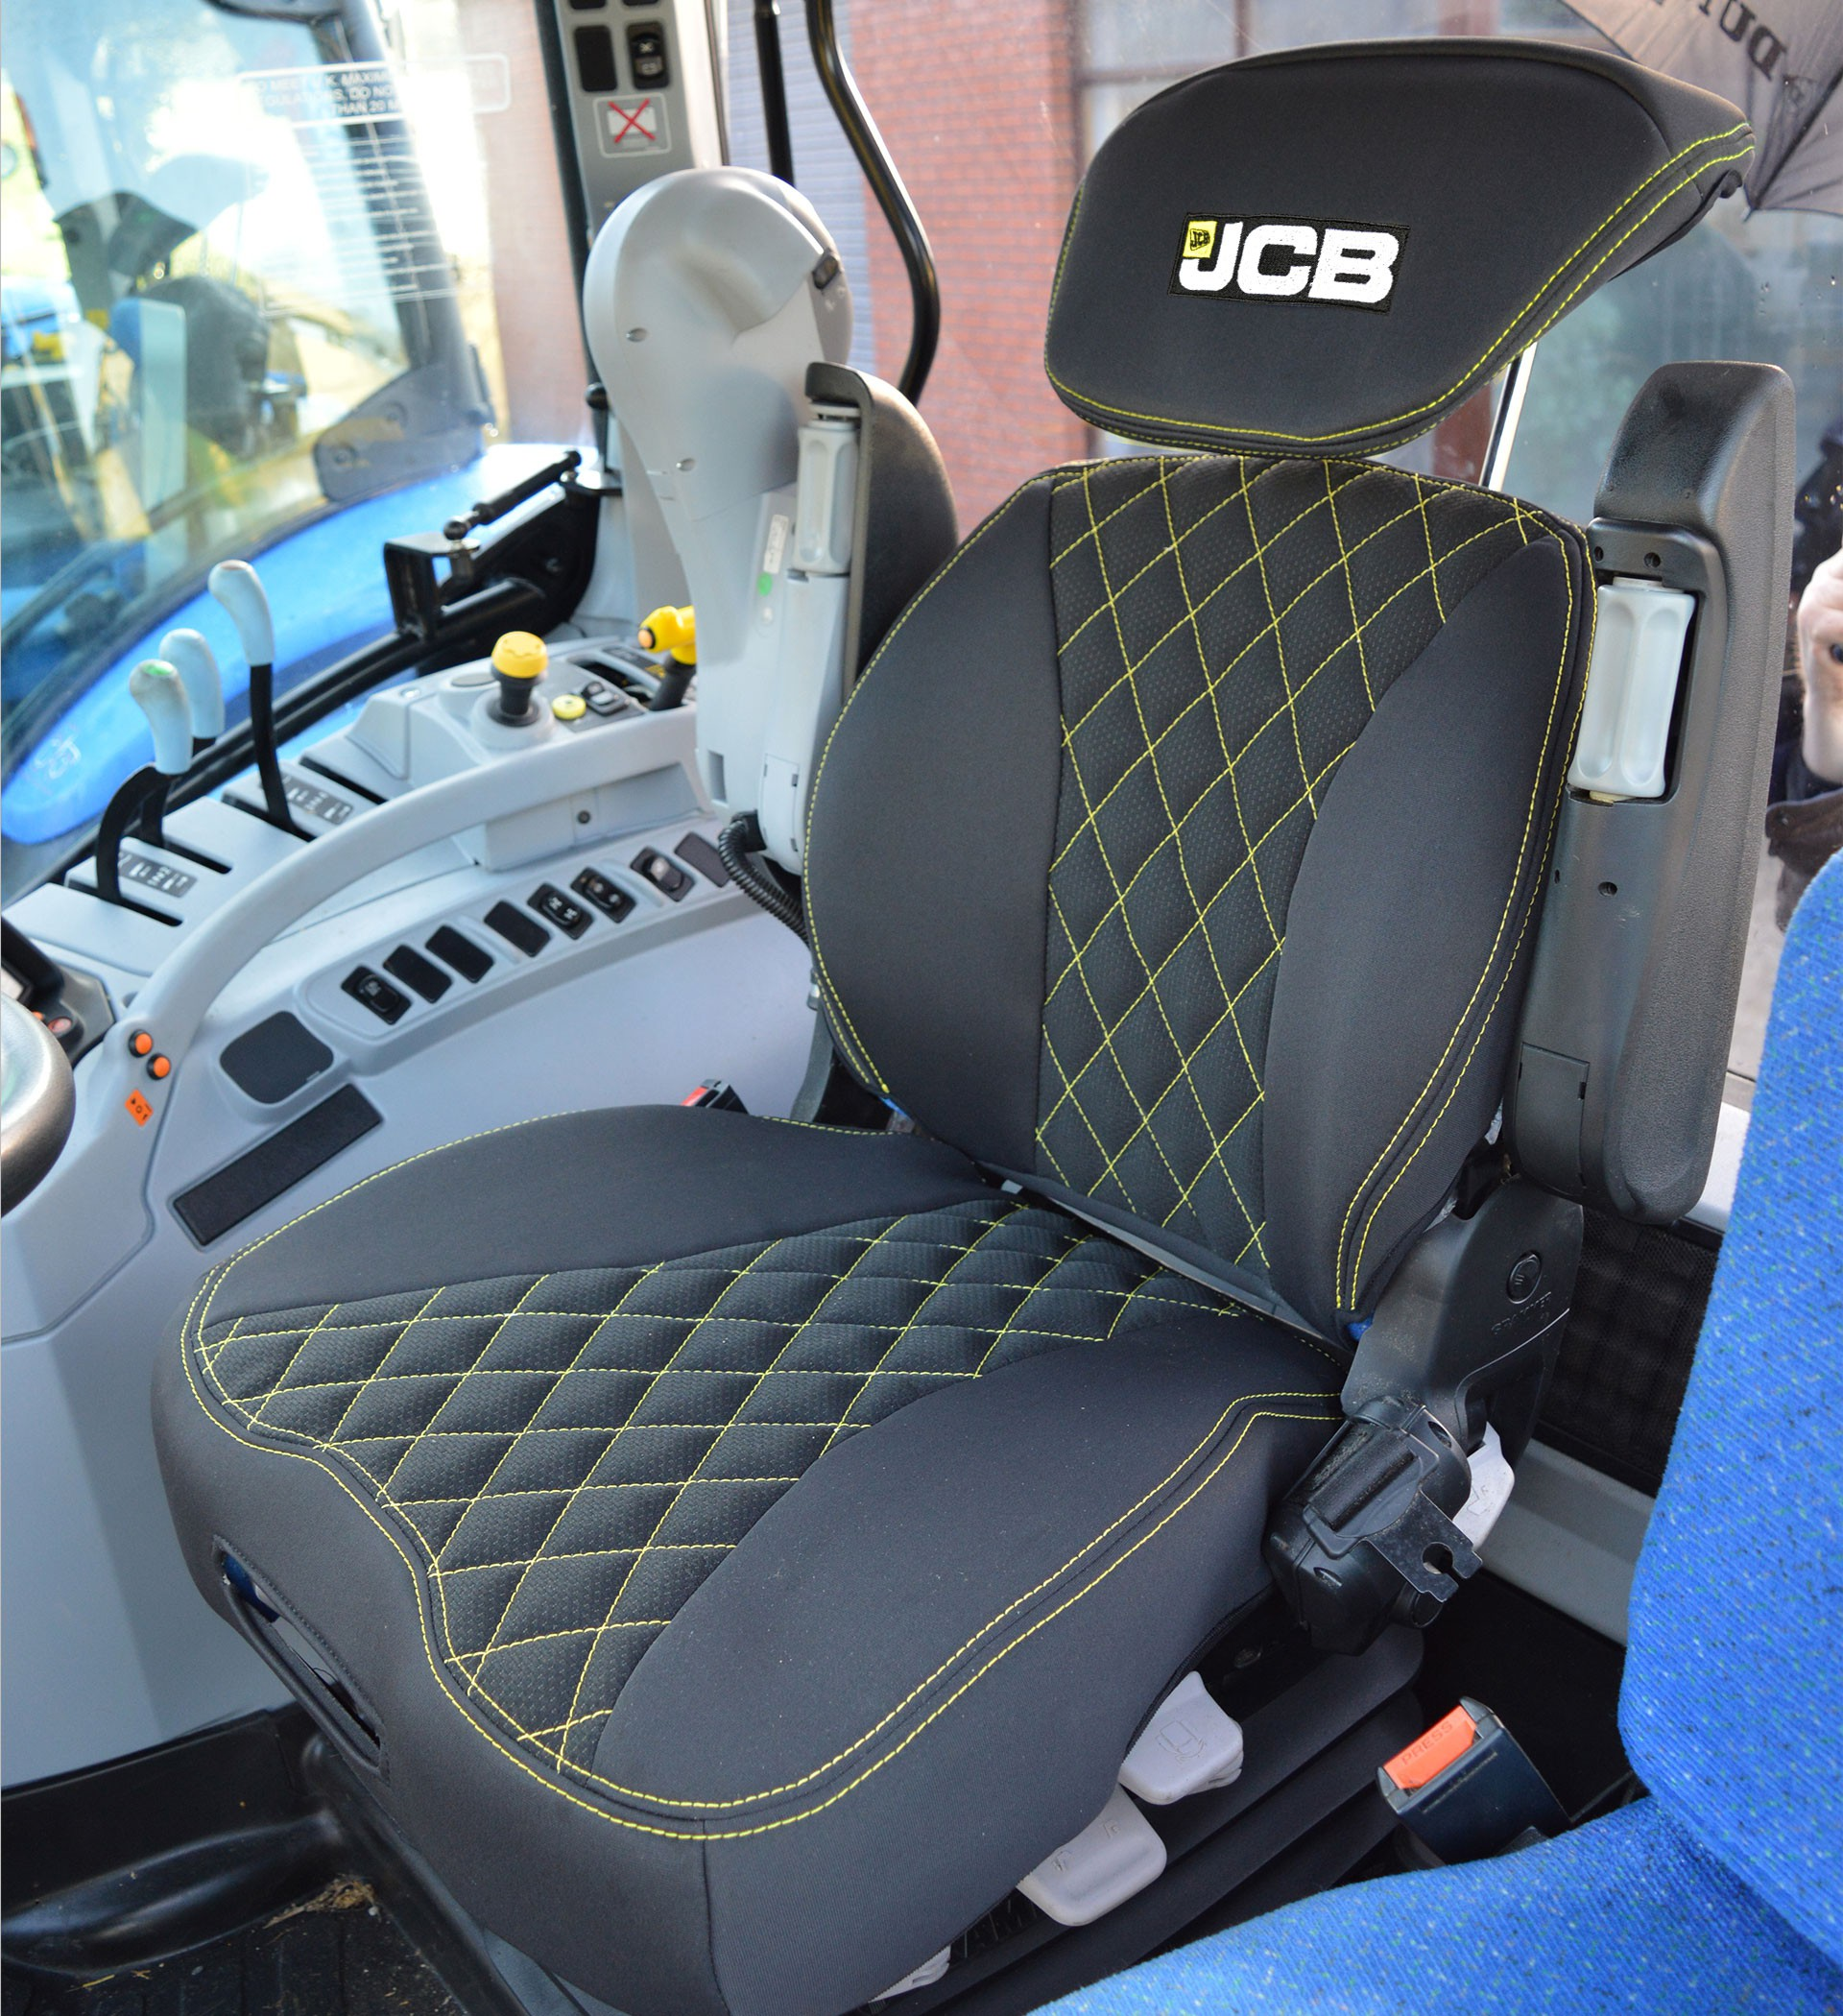 JCB Grammer Maximo Dynamic Tailored Seat Cover